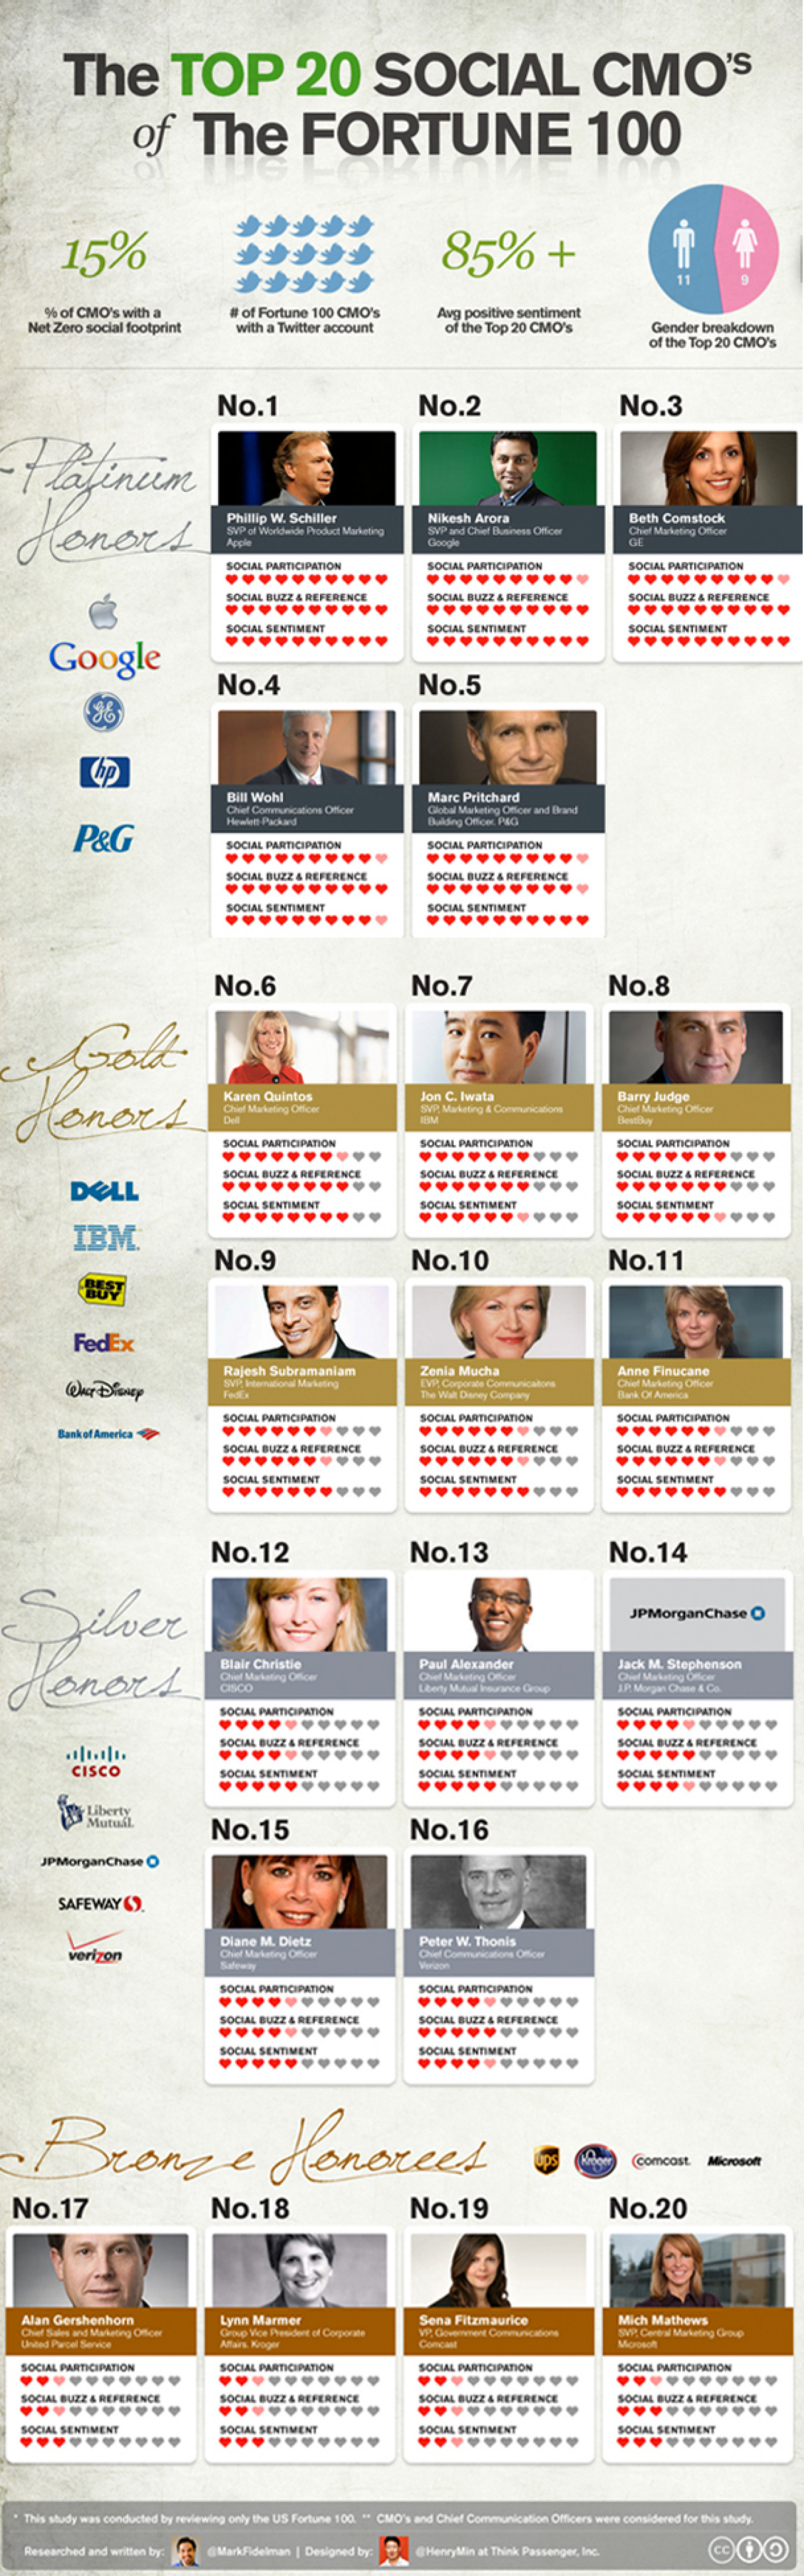 The Top 20 Social CMOs of the Fortune 100 Infographic